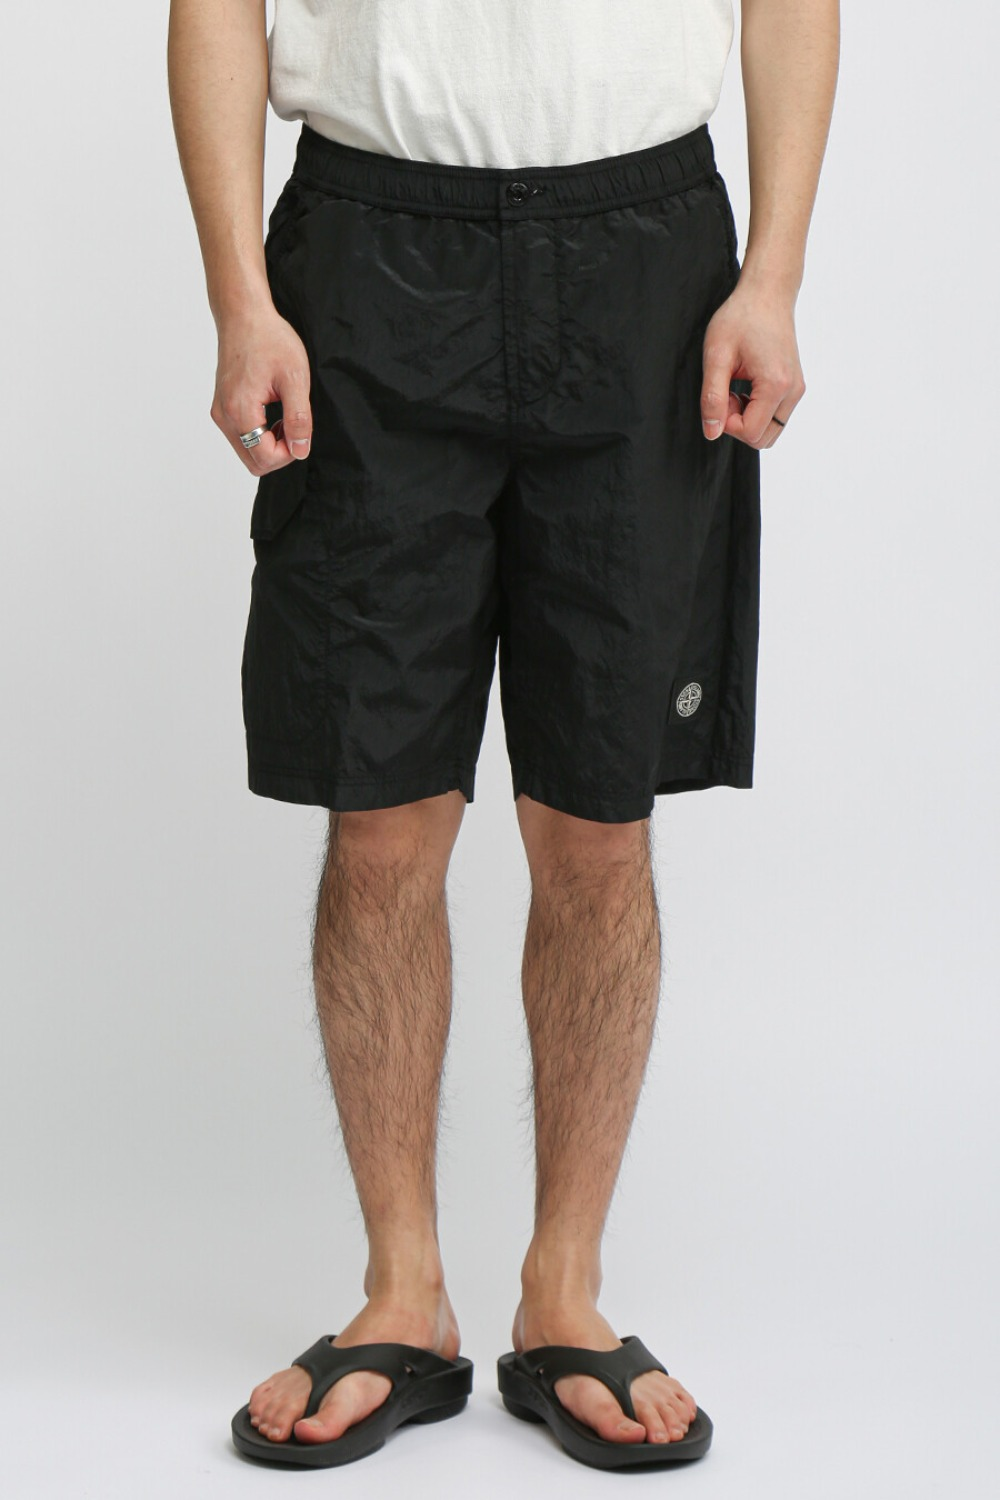 NYLON METAL CARGO SHORTS(B0343) BLACK